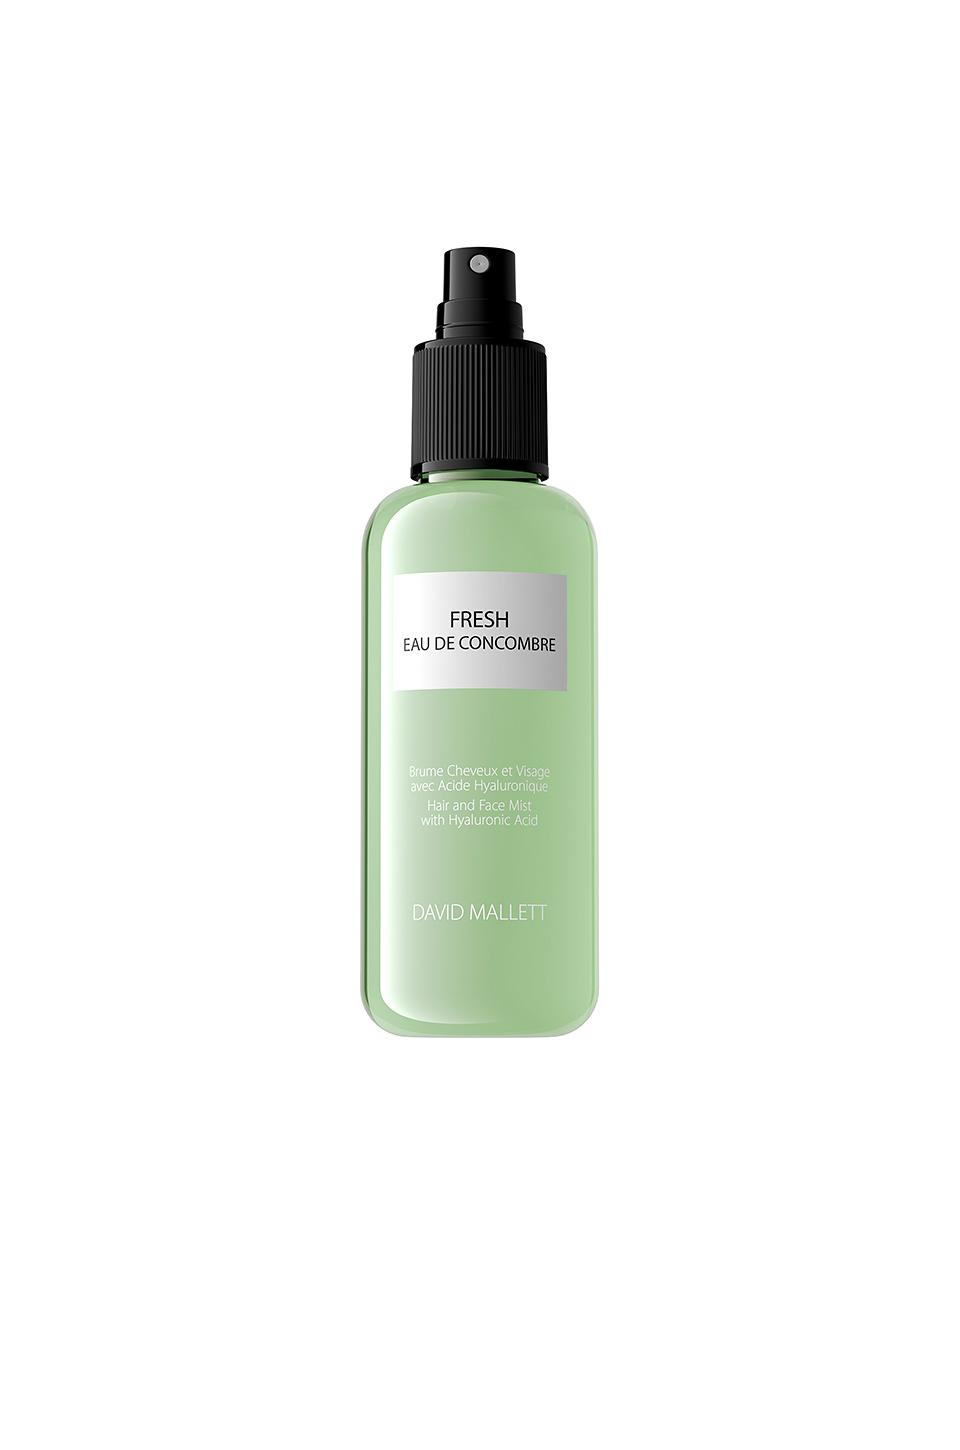 David Mallett Spray Fresh Eau De Concombre Hair And Face Mist. In N,a